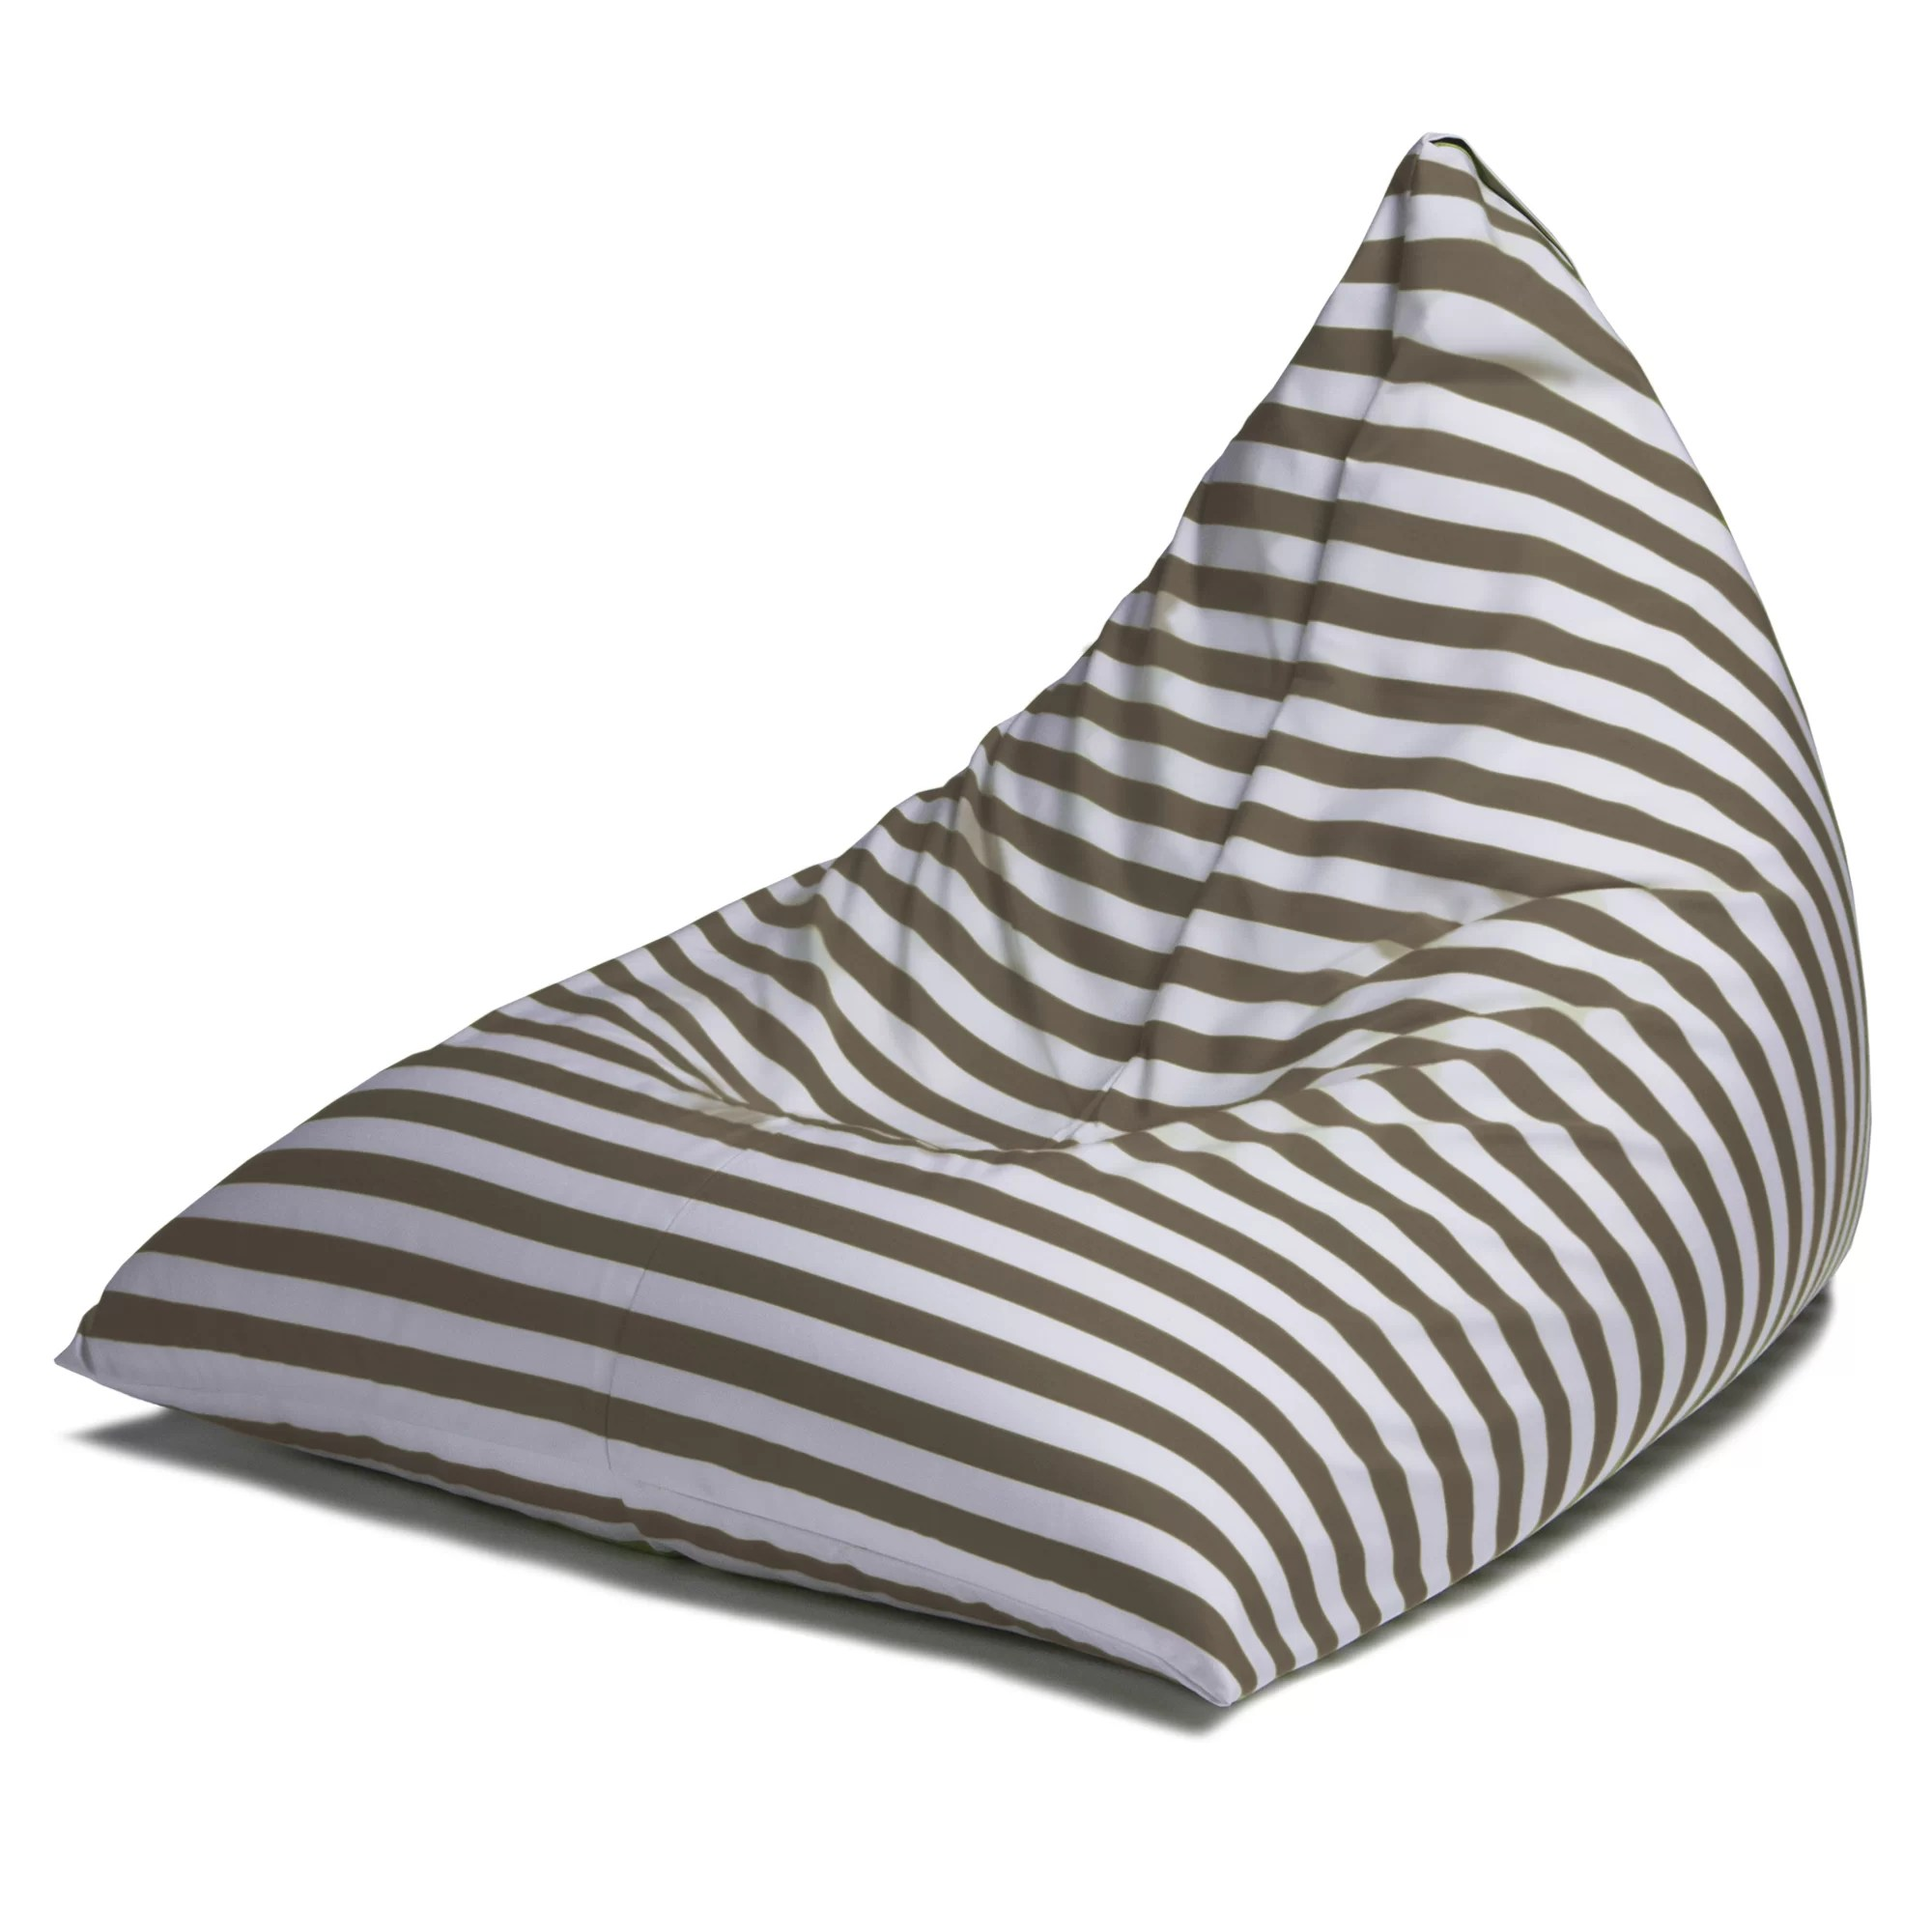 Bean Bags Chair Jaxx Twist Outdoor Bean Bag Chair And Reviews Wayfair